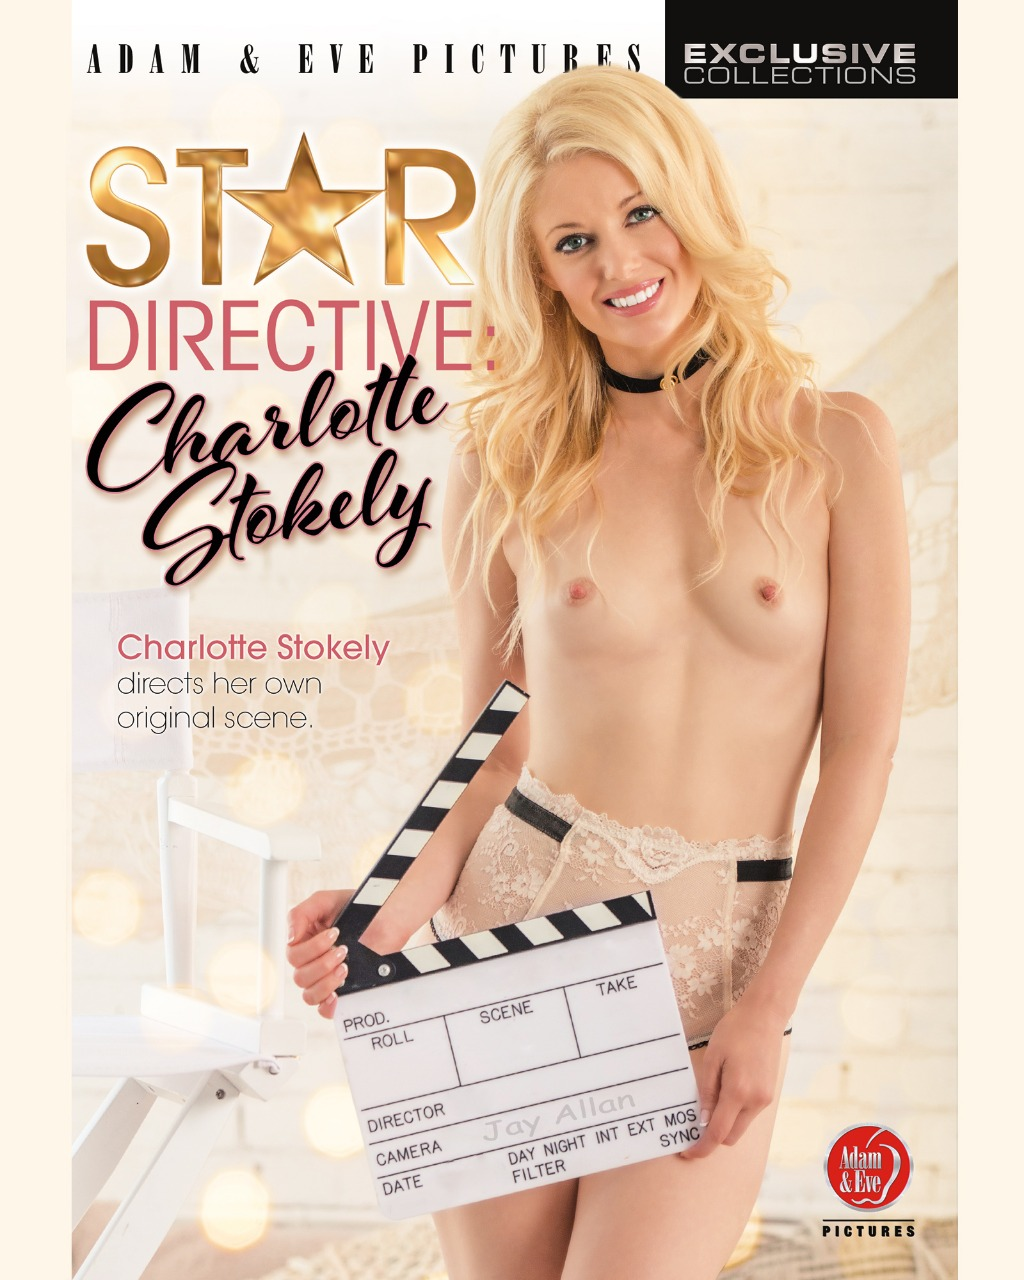 Adam & Eve Releases Charlotte Stokely's Directorial Debut: 'Star Directive'